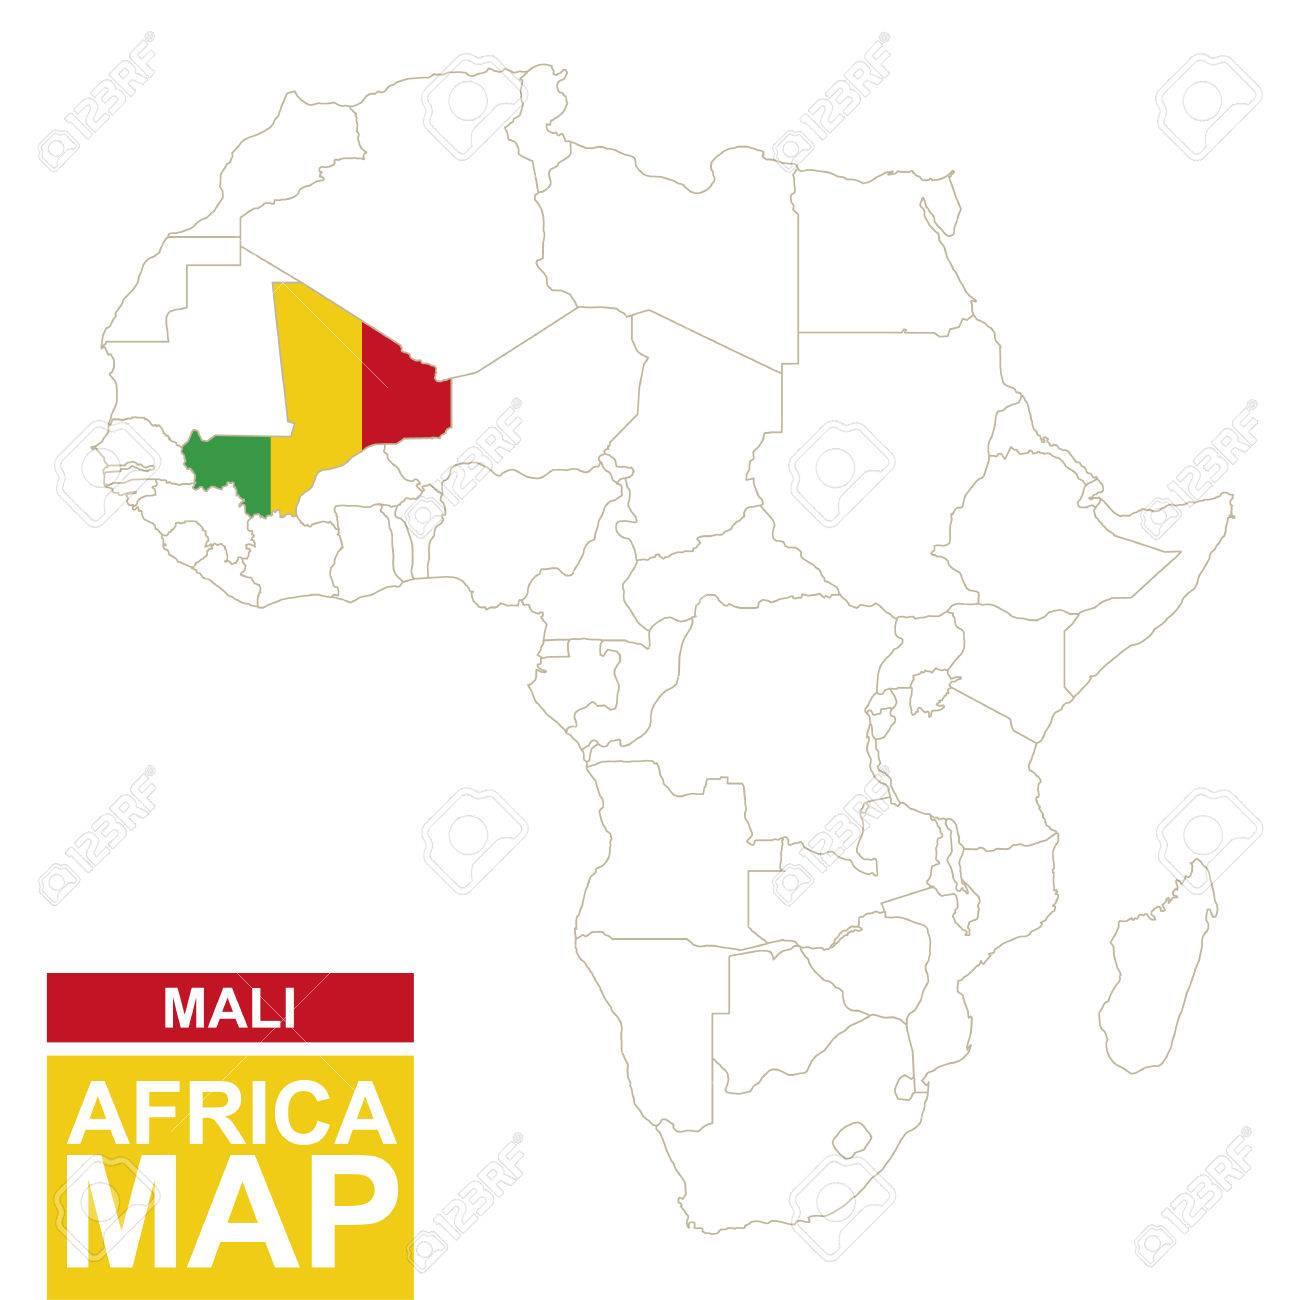 Africa contoured map with highlighted Mali. Mali map and flag.. on aksum on map, nile river on map, senegal on map, songhai on map, mauritius on map, greece on map, timbuktu on map, tanzania on map, uganda on map, burundi on map, kilwa on map, niger river on map, ghana on map, eritrea on map, libyan desert on map, nauru on map, nigeria on map, iberian peninsula on world map, scotland on map, somalia on map,